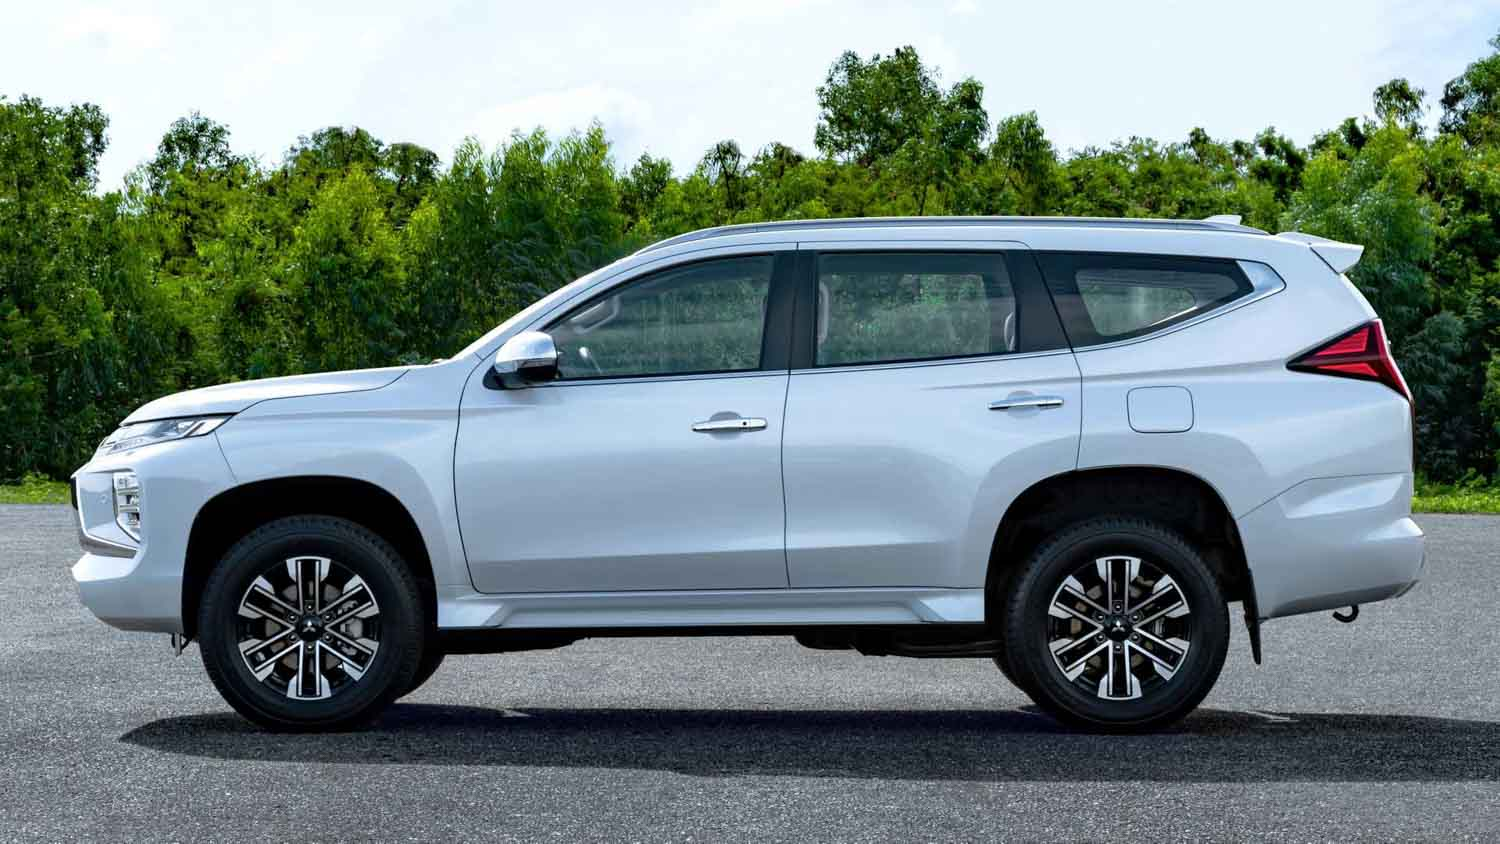 2020 Mitsubishi Pajero Redesign And US Release Date >> 2020 Mitsubishi Pajero Sport Revealed India Launch In Pipeline